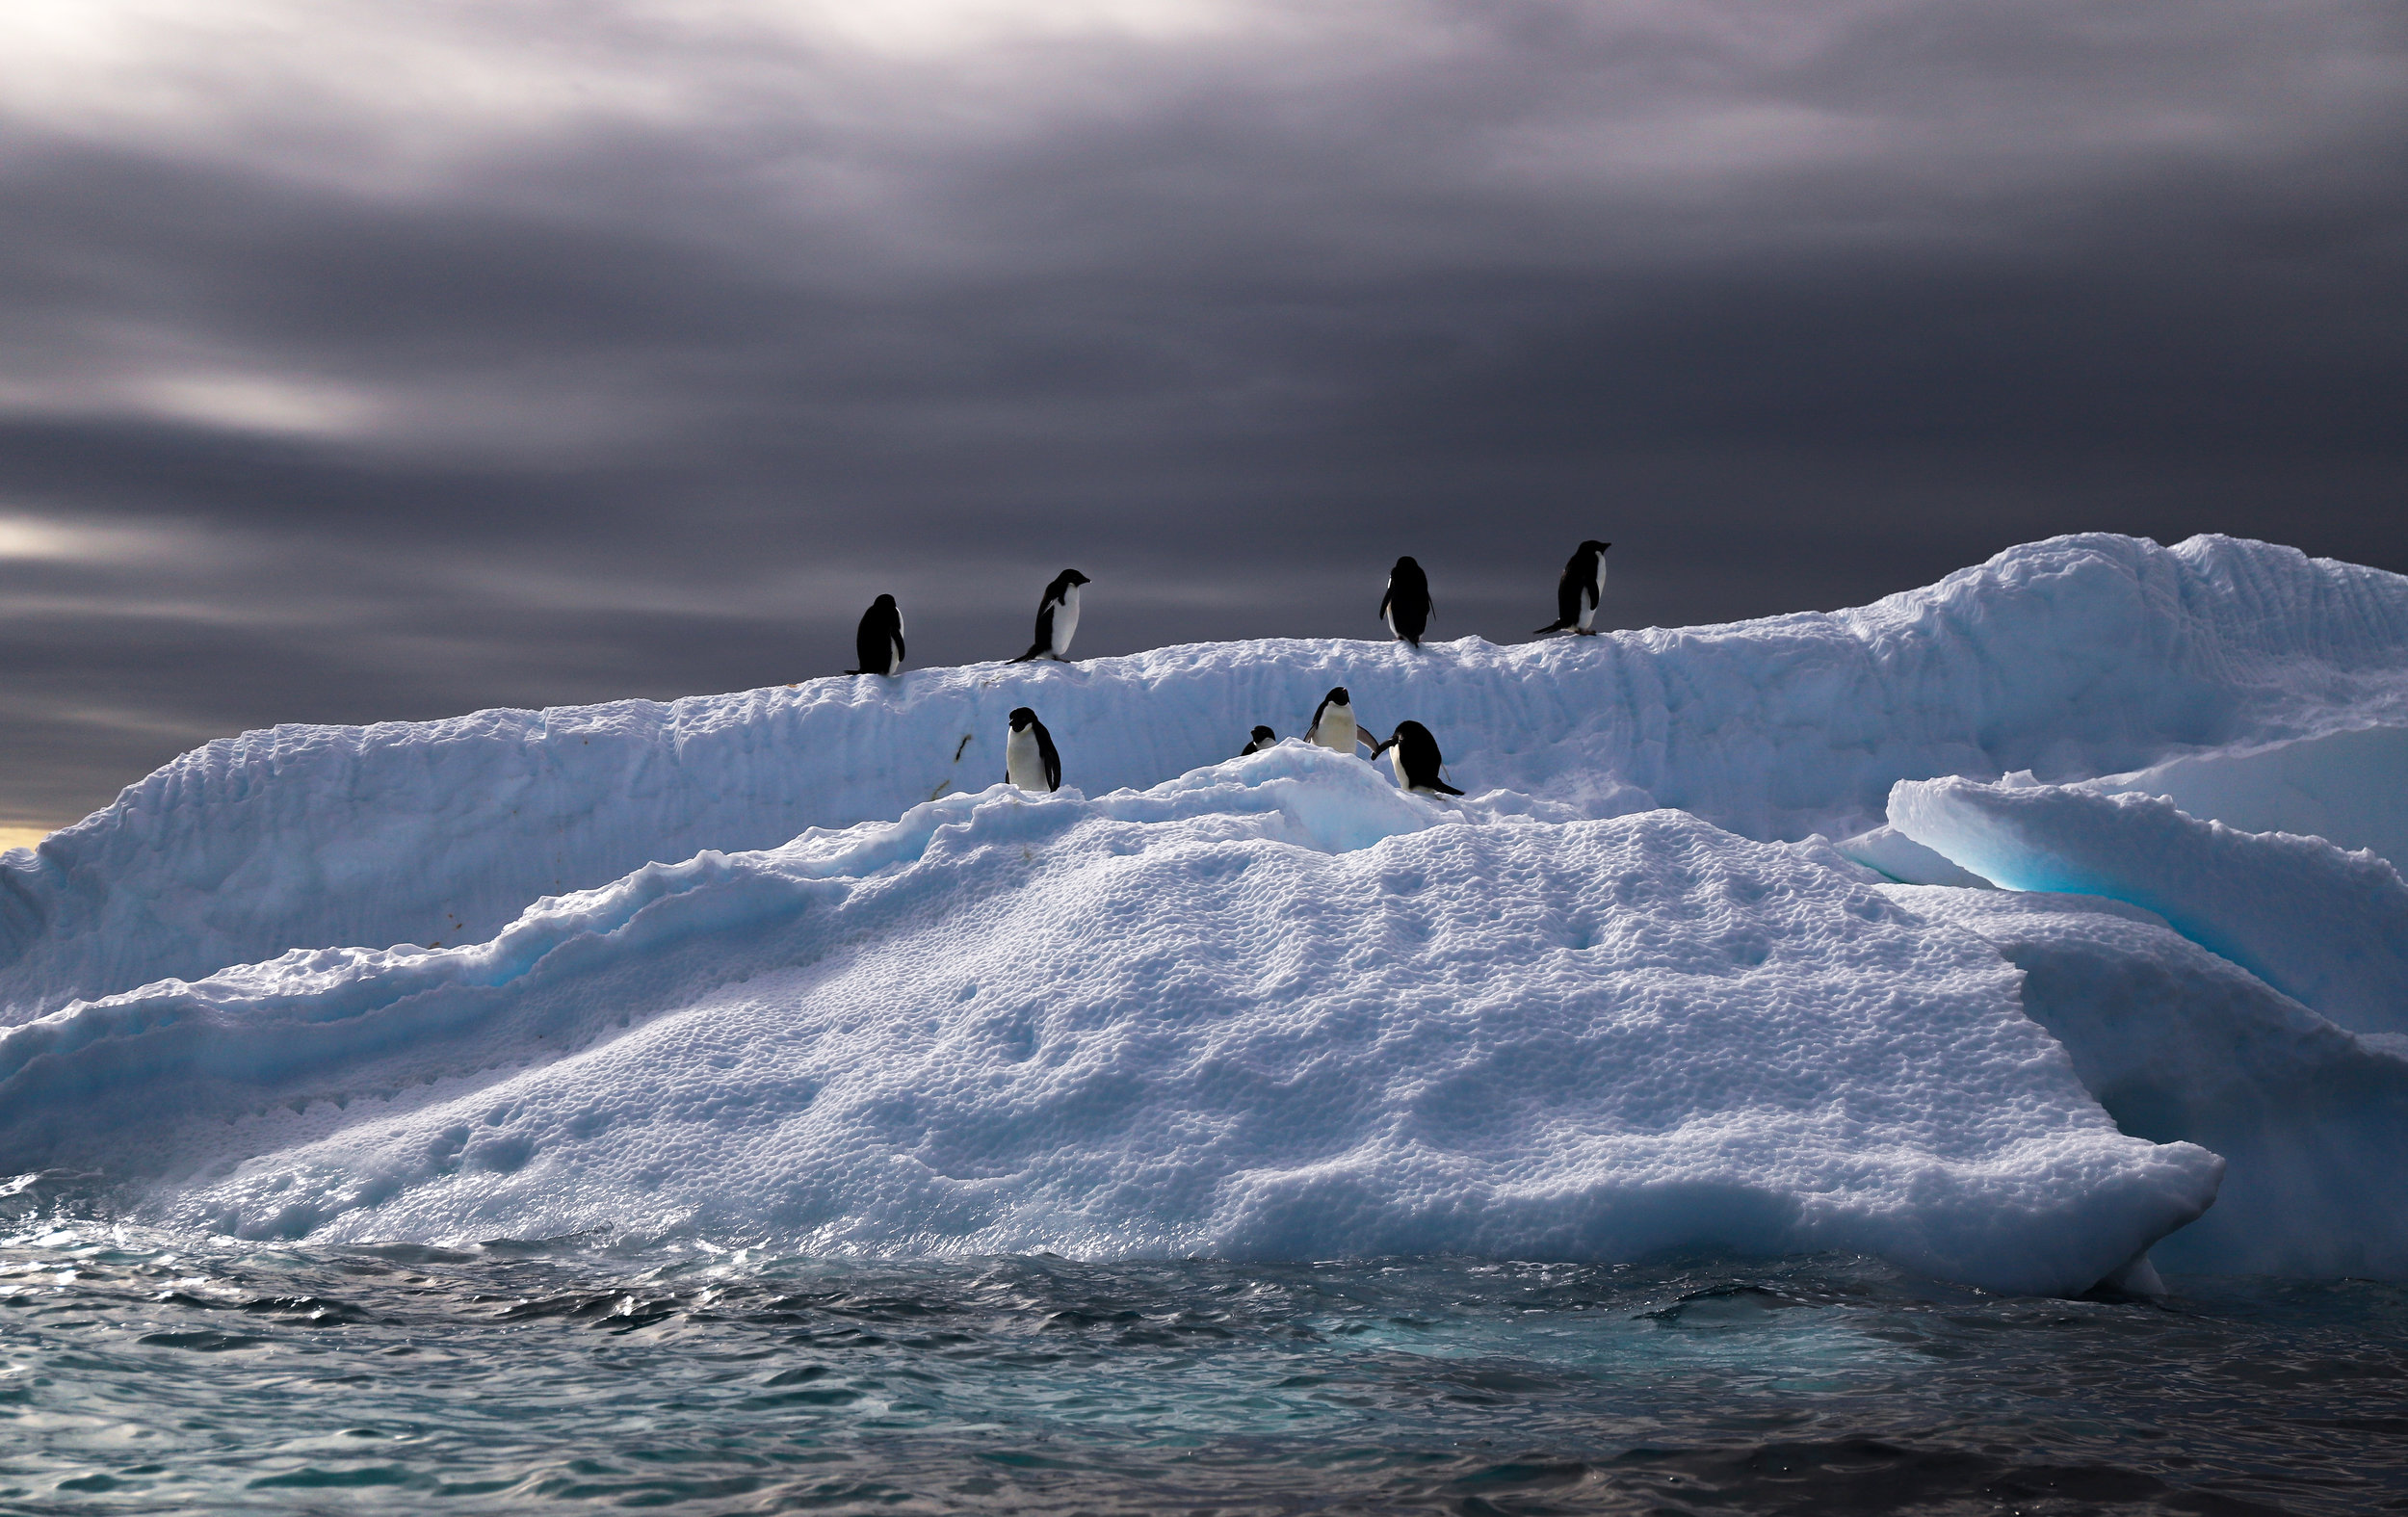 Adelie penguins on a berg.